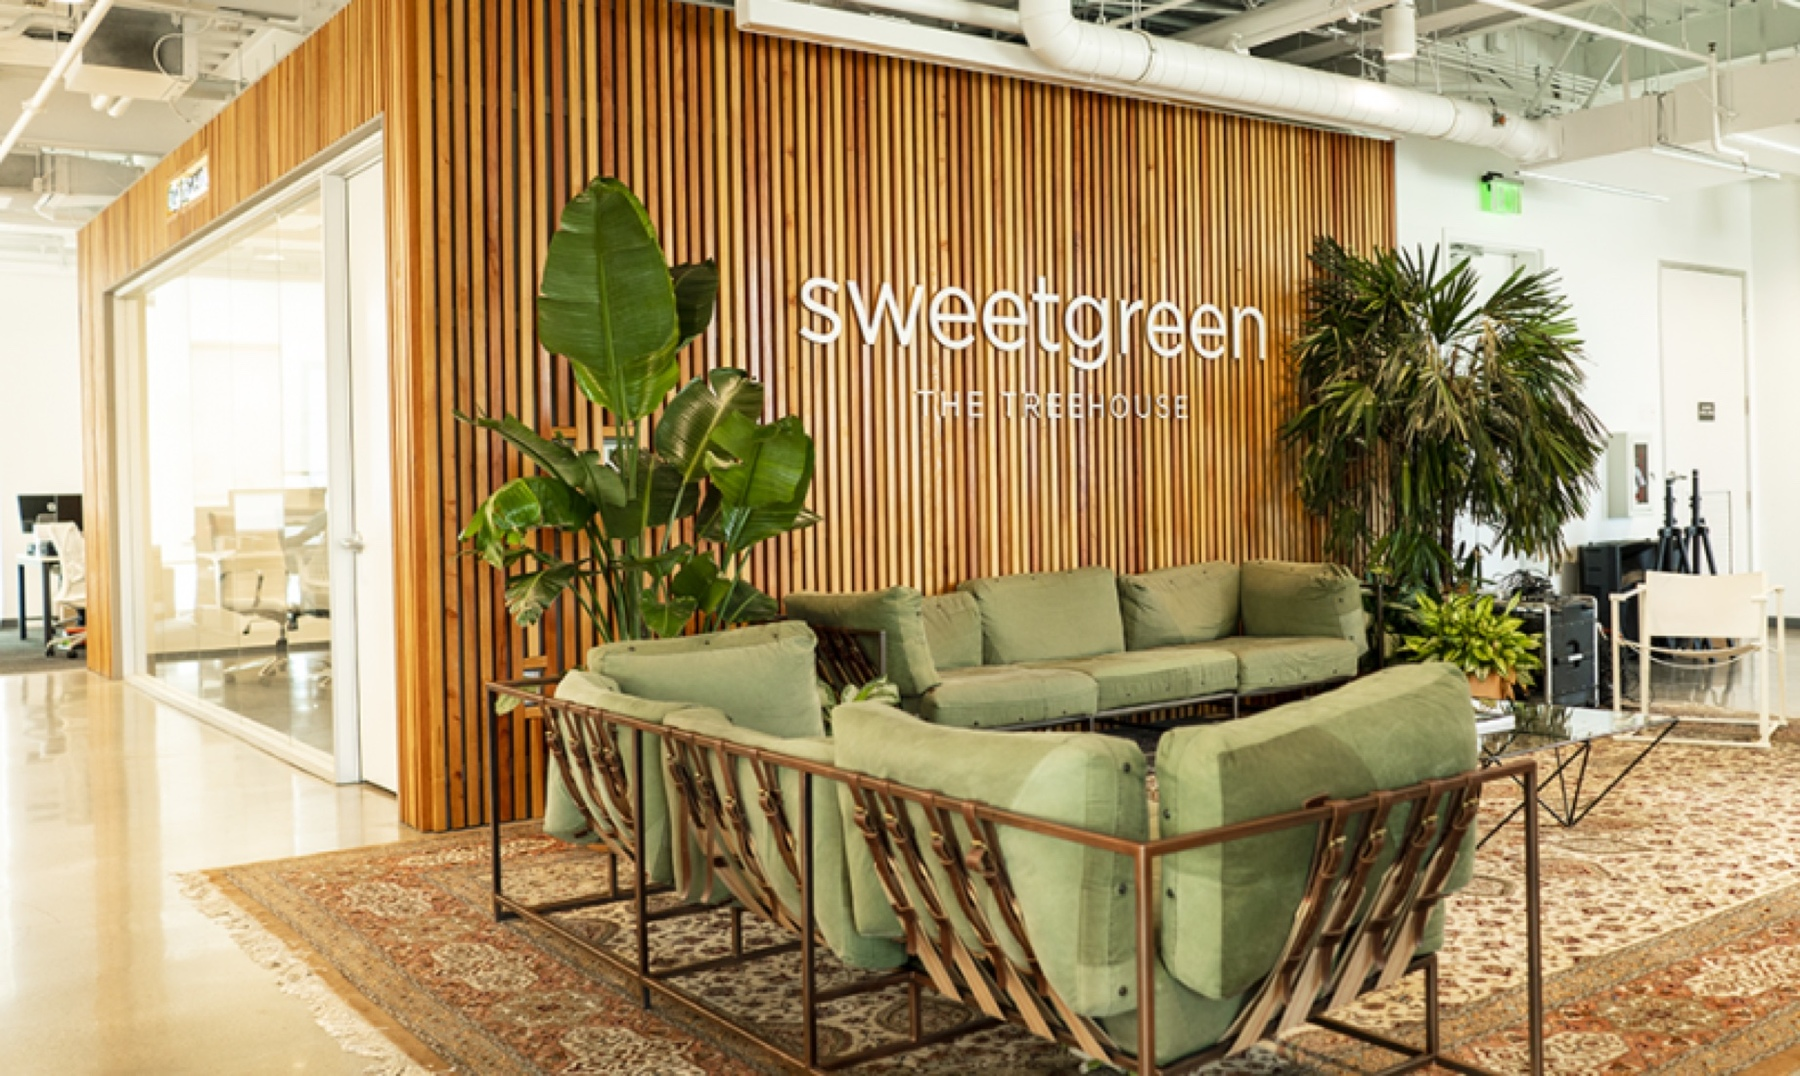 sweetgreen photo 3